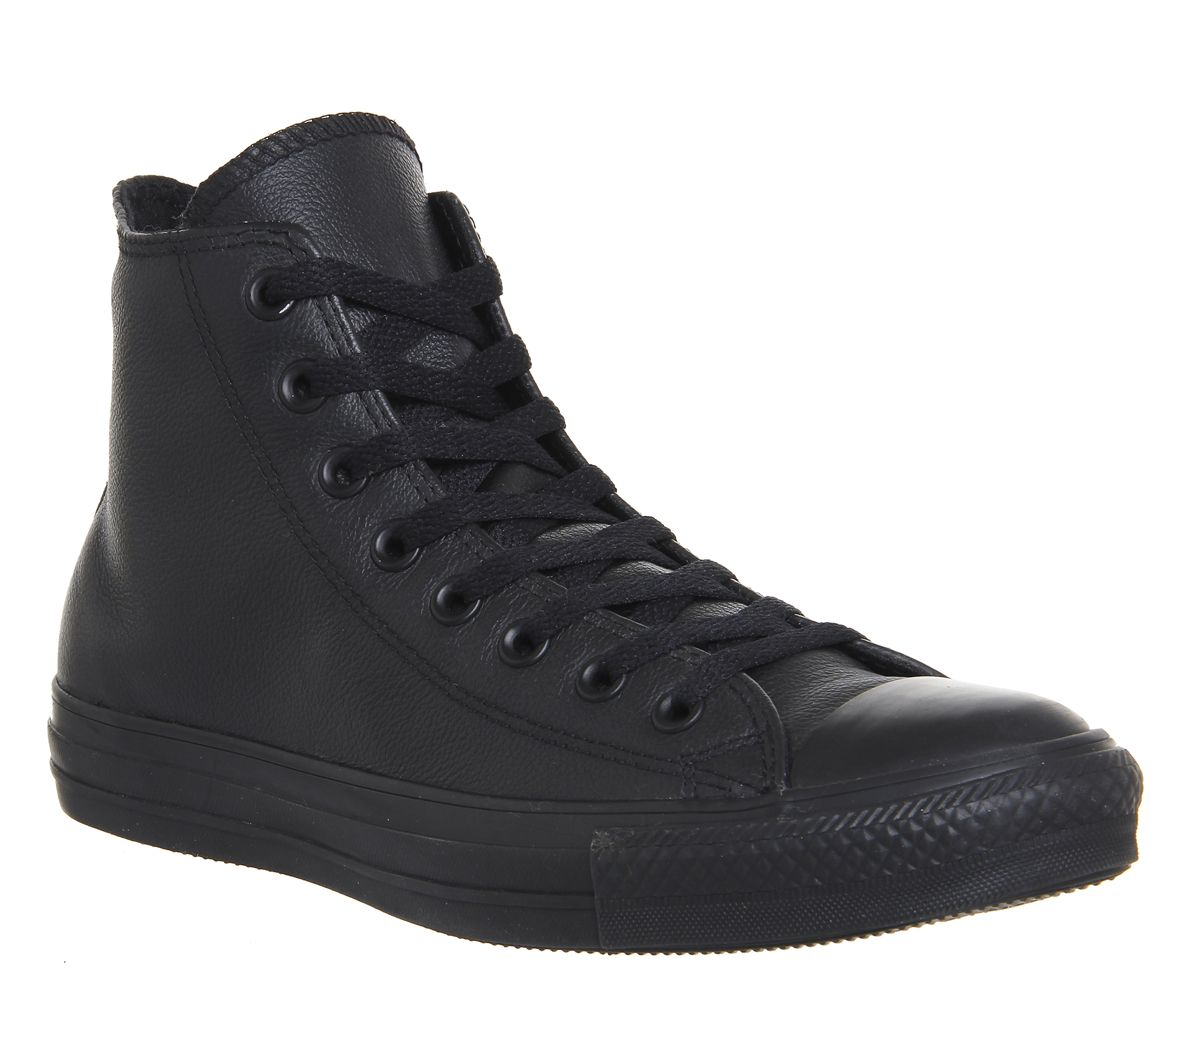 022fcd8d5995 Converse All Star Hi Leather Black Mono - Unisex Sports